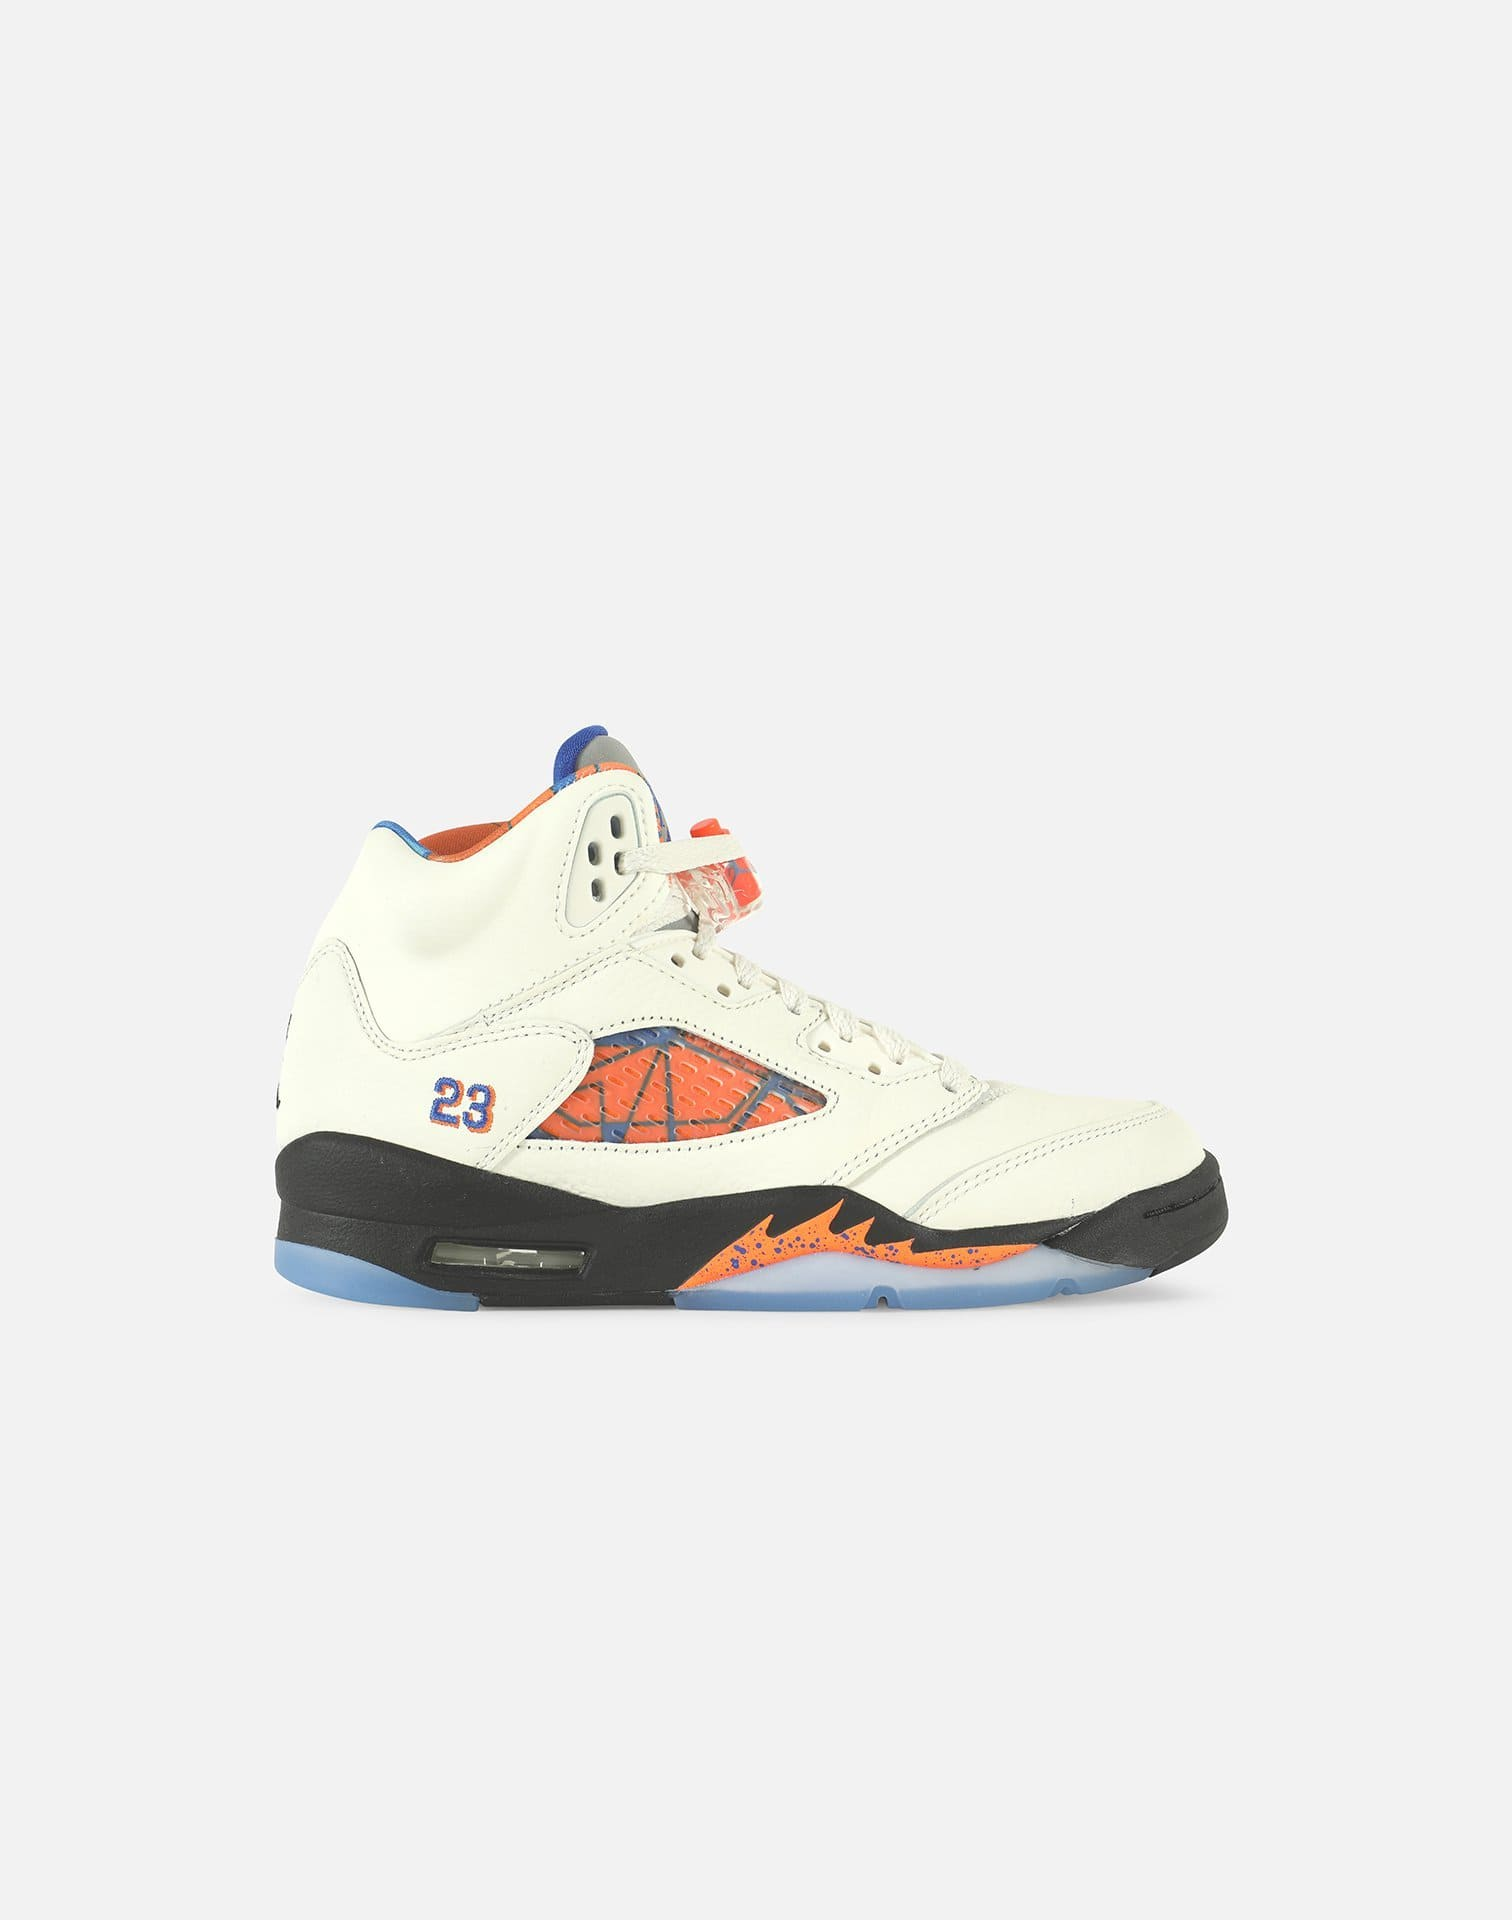 Jordan Air Jordan Retro 5 'International Fight' Grade-School